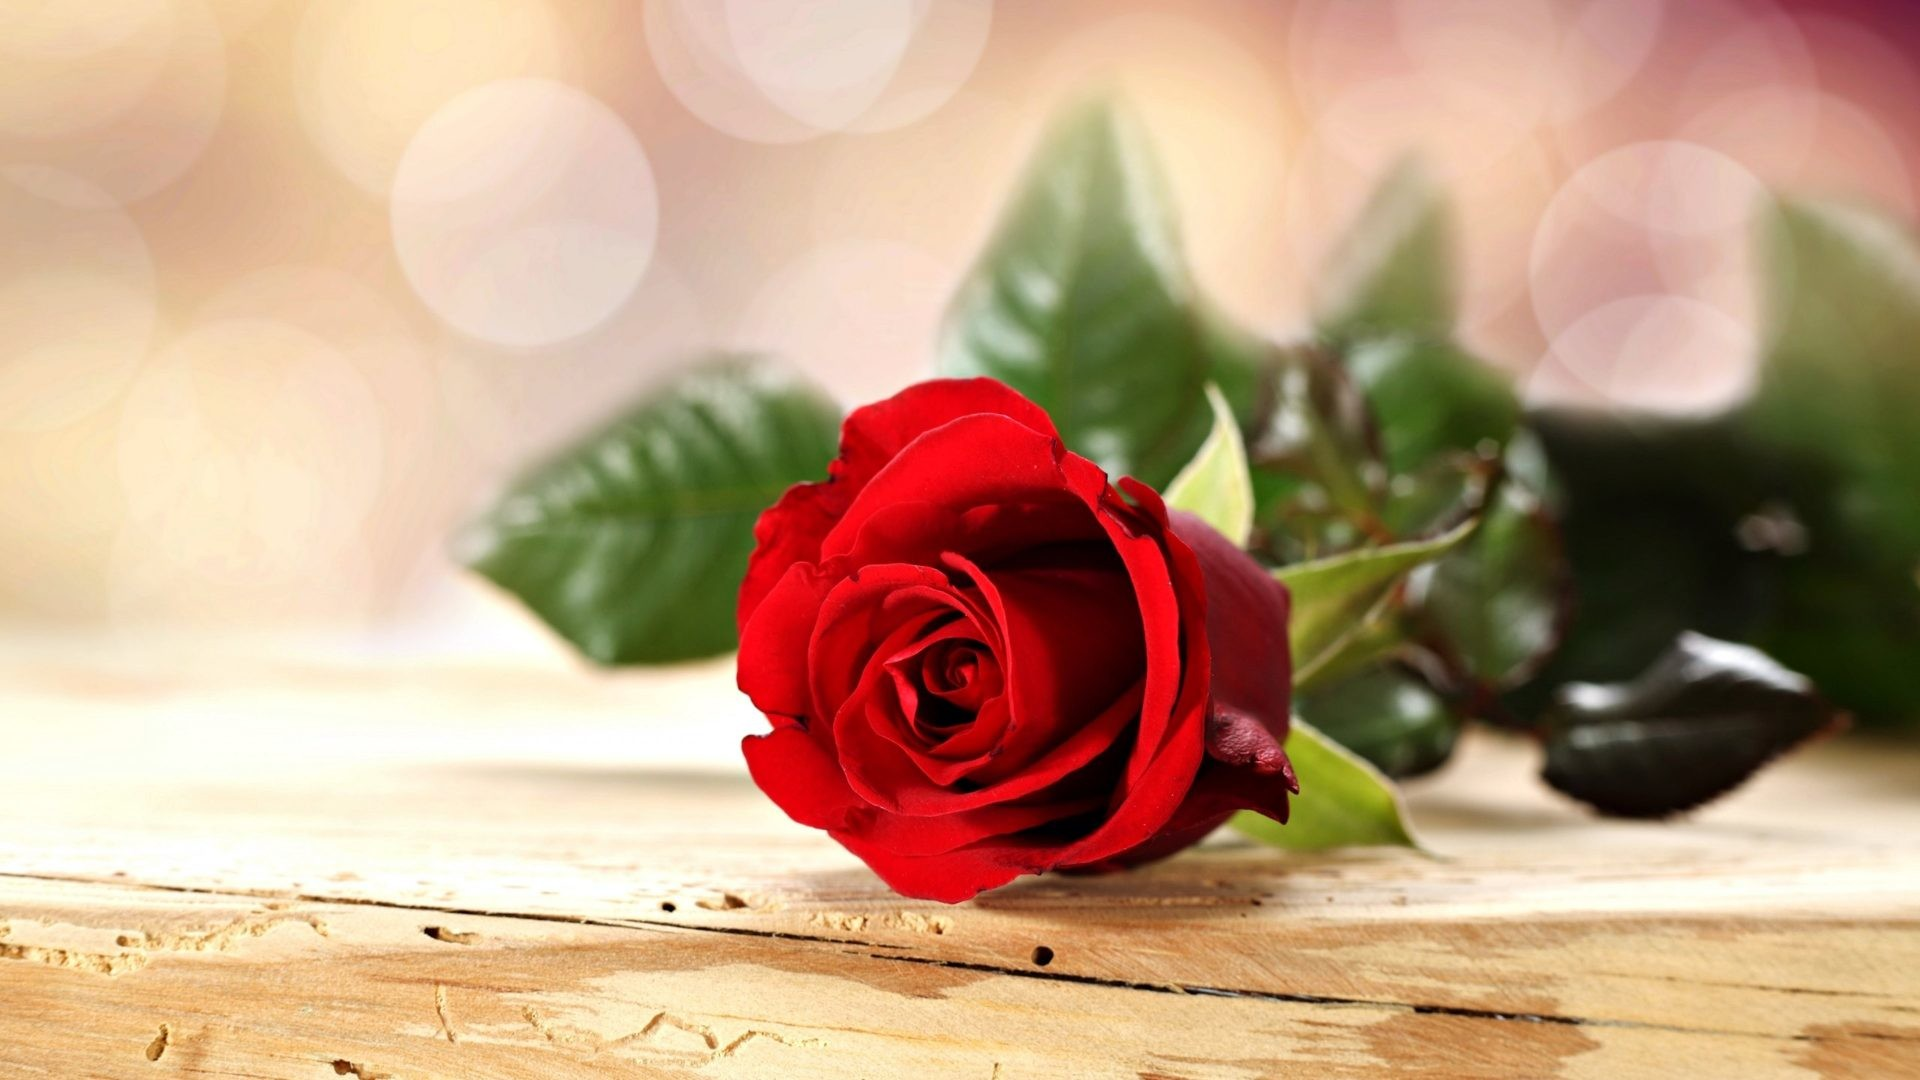 Red Rose Love Wallpaper 55 Images